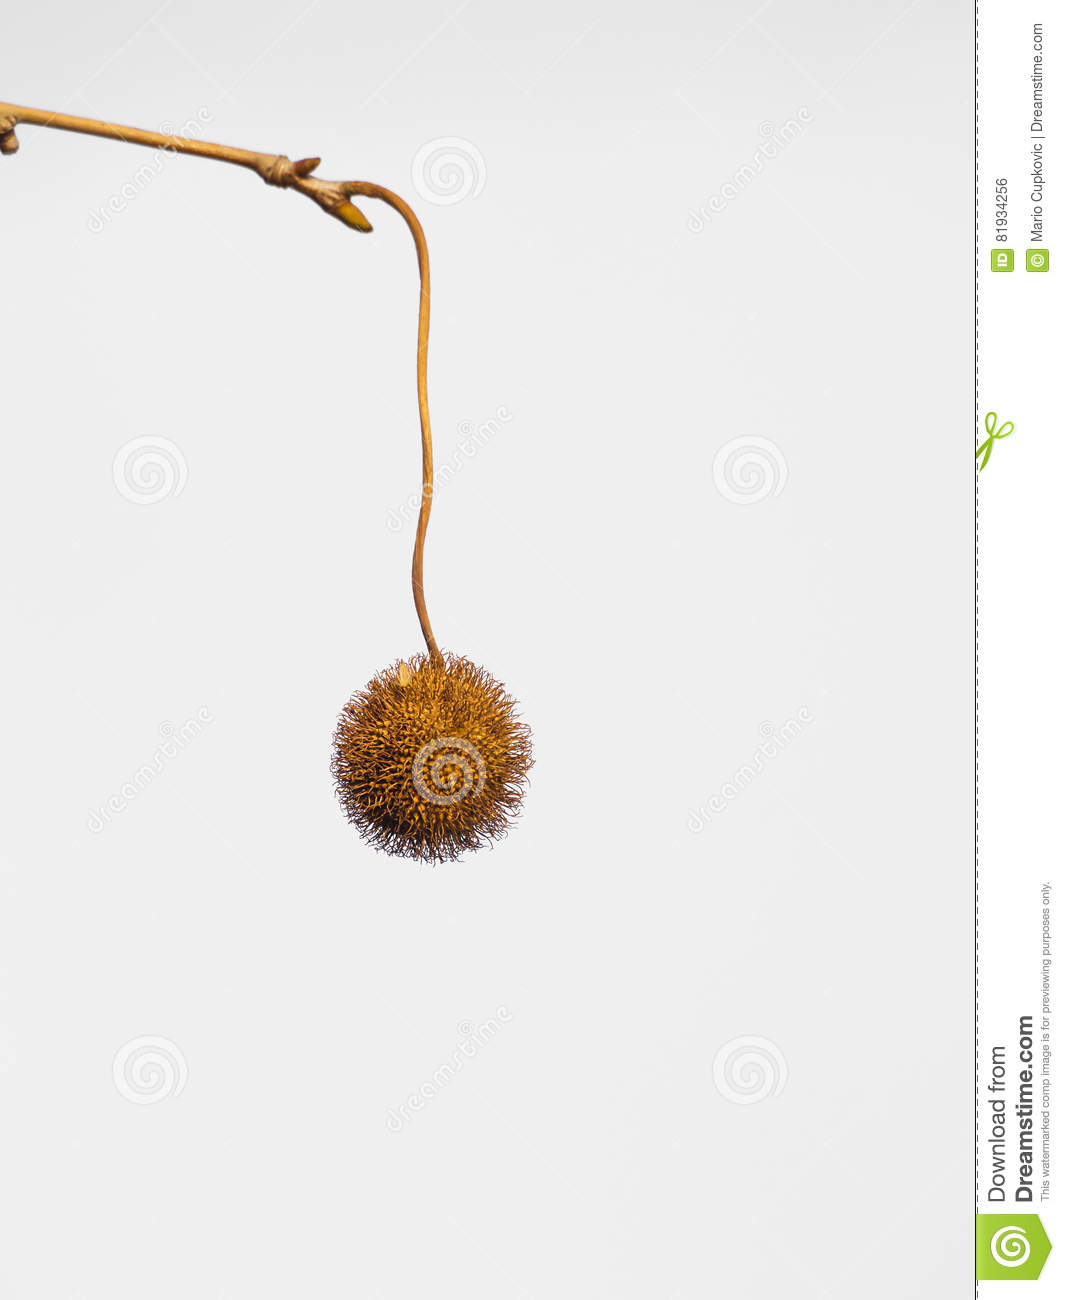 Sycamore balls stock photo  Image of fall, branch, beautiful